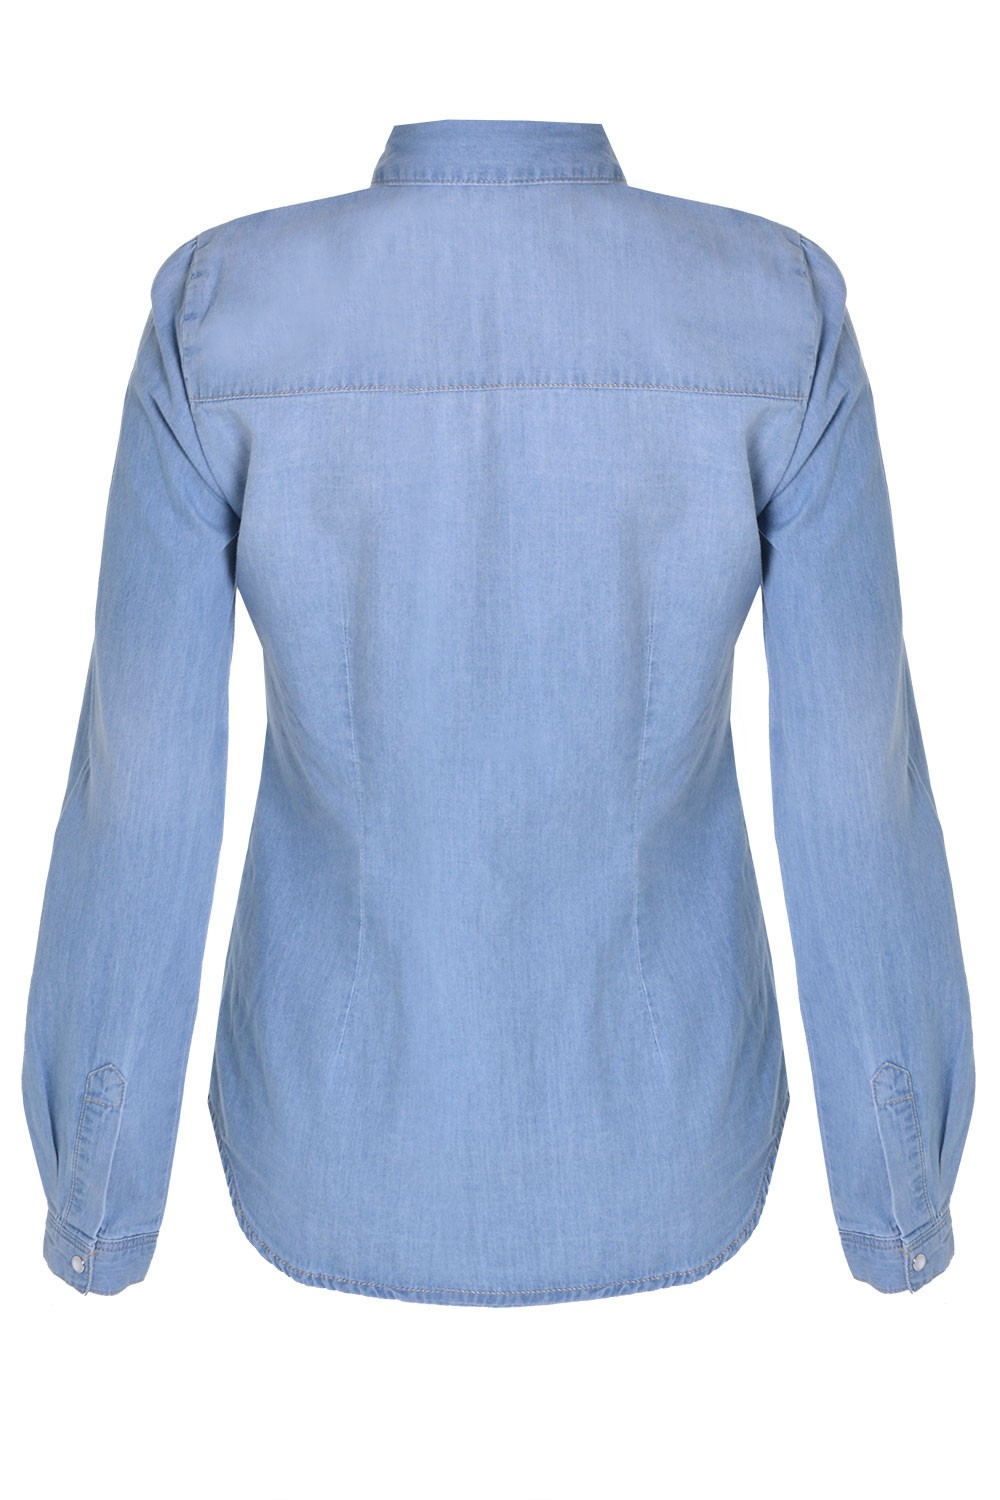 Only Rock It Fit Denim Shirt In Light Blue Iclothing